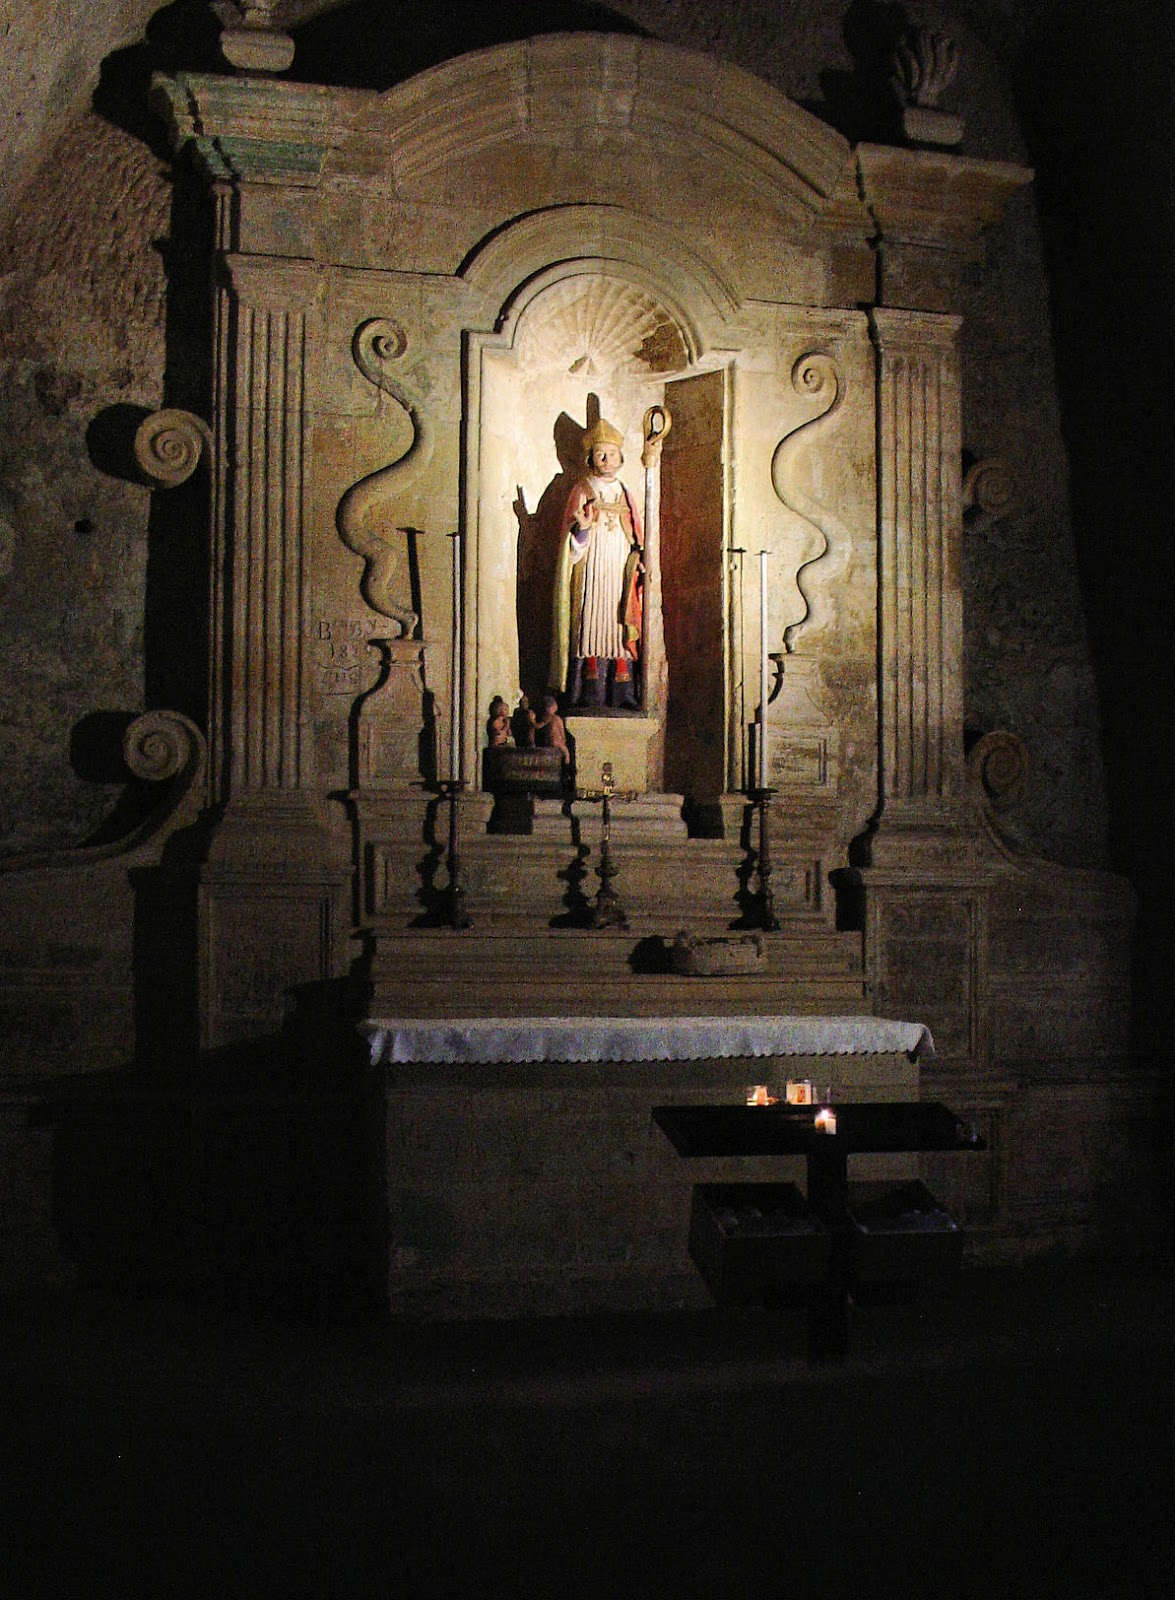 A small chapel inside the Monolithic Church in Saint-Émilion.